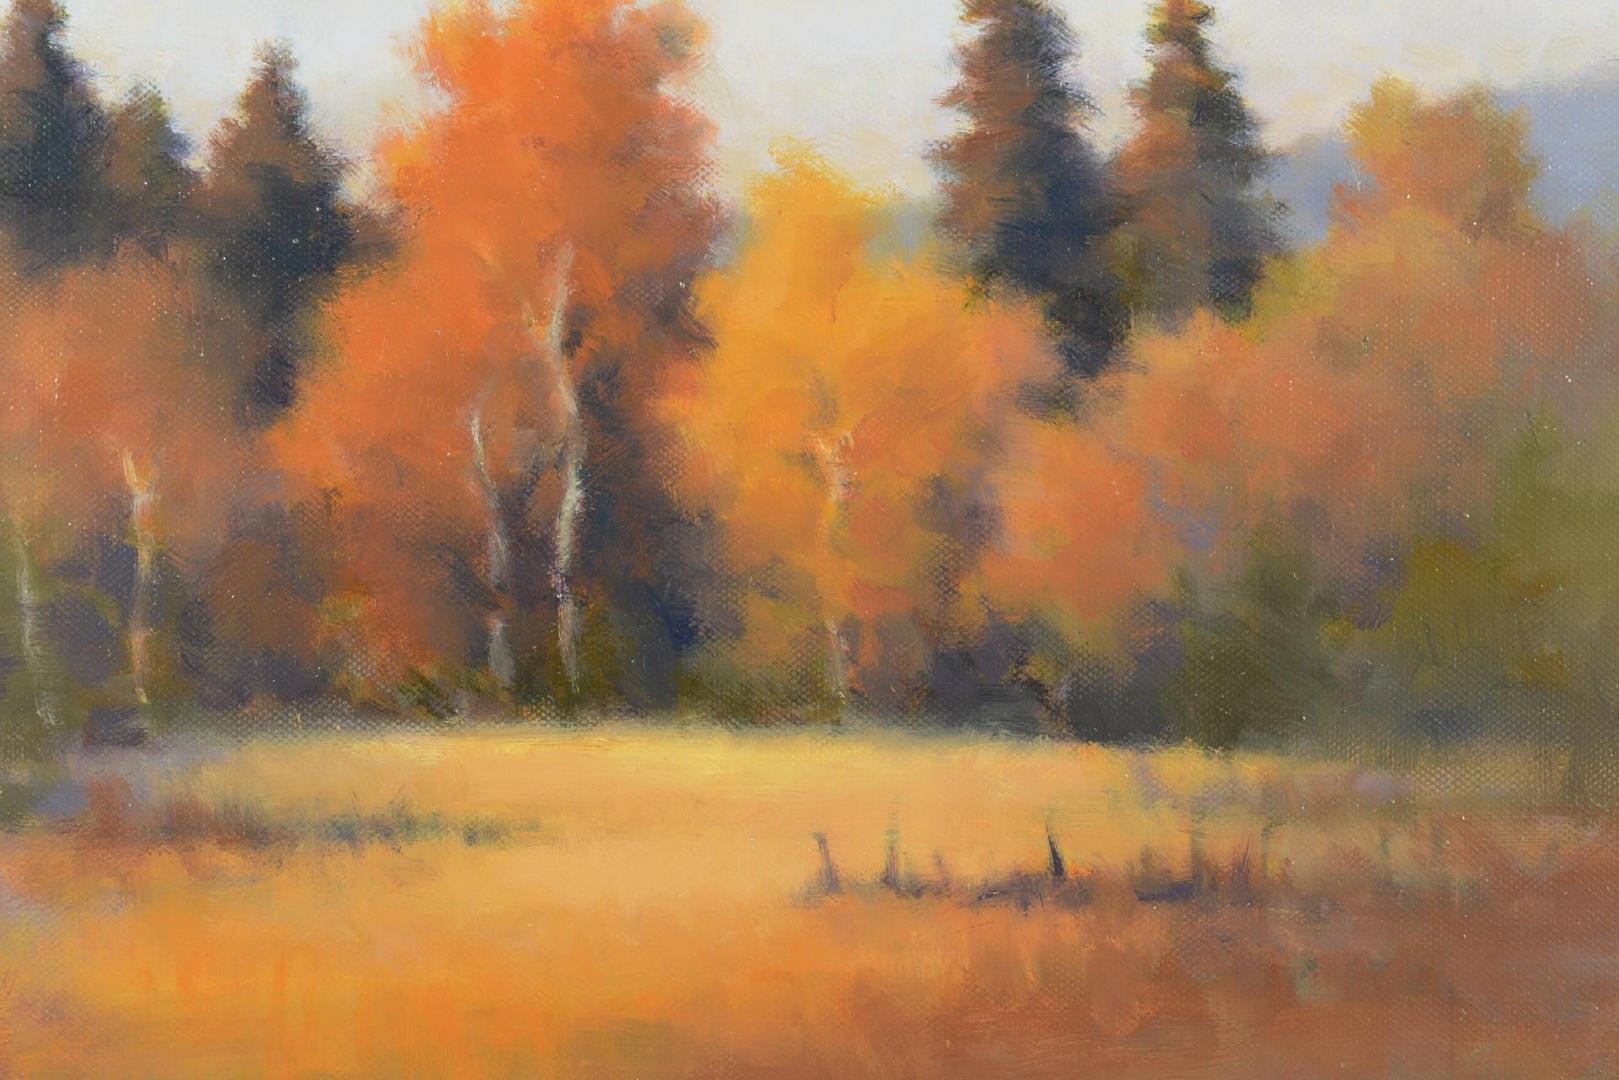 Lot 753: Autumn Glow by David Marty